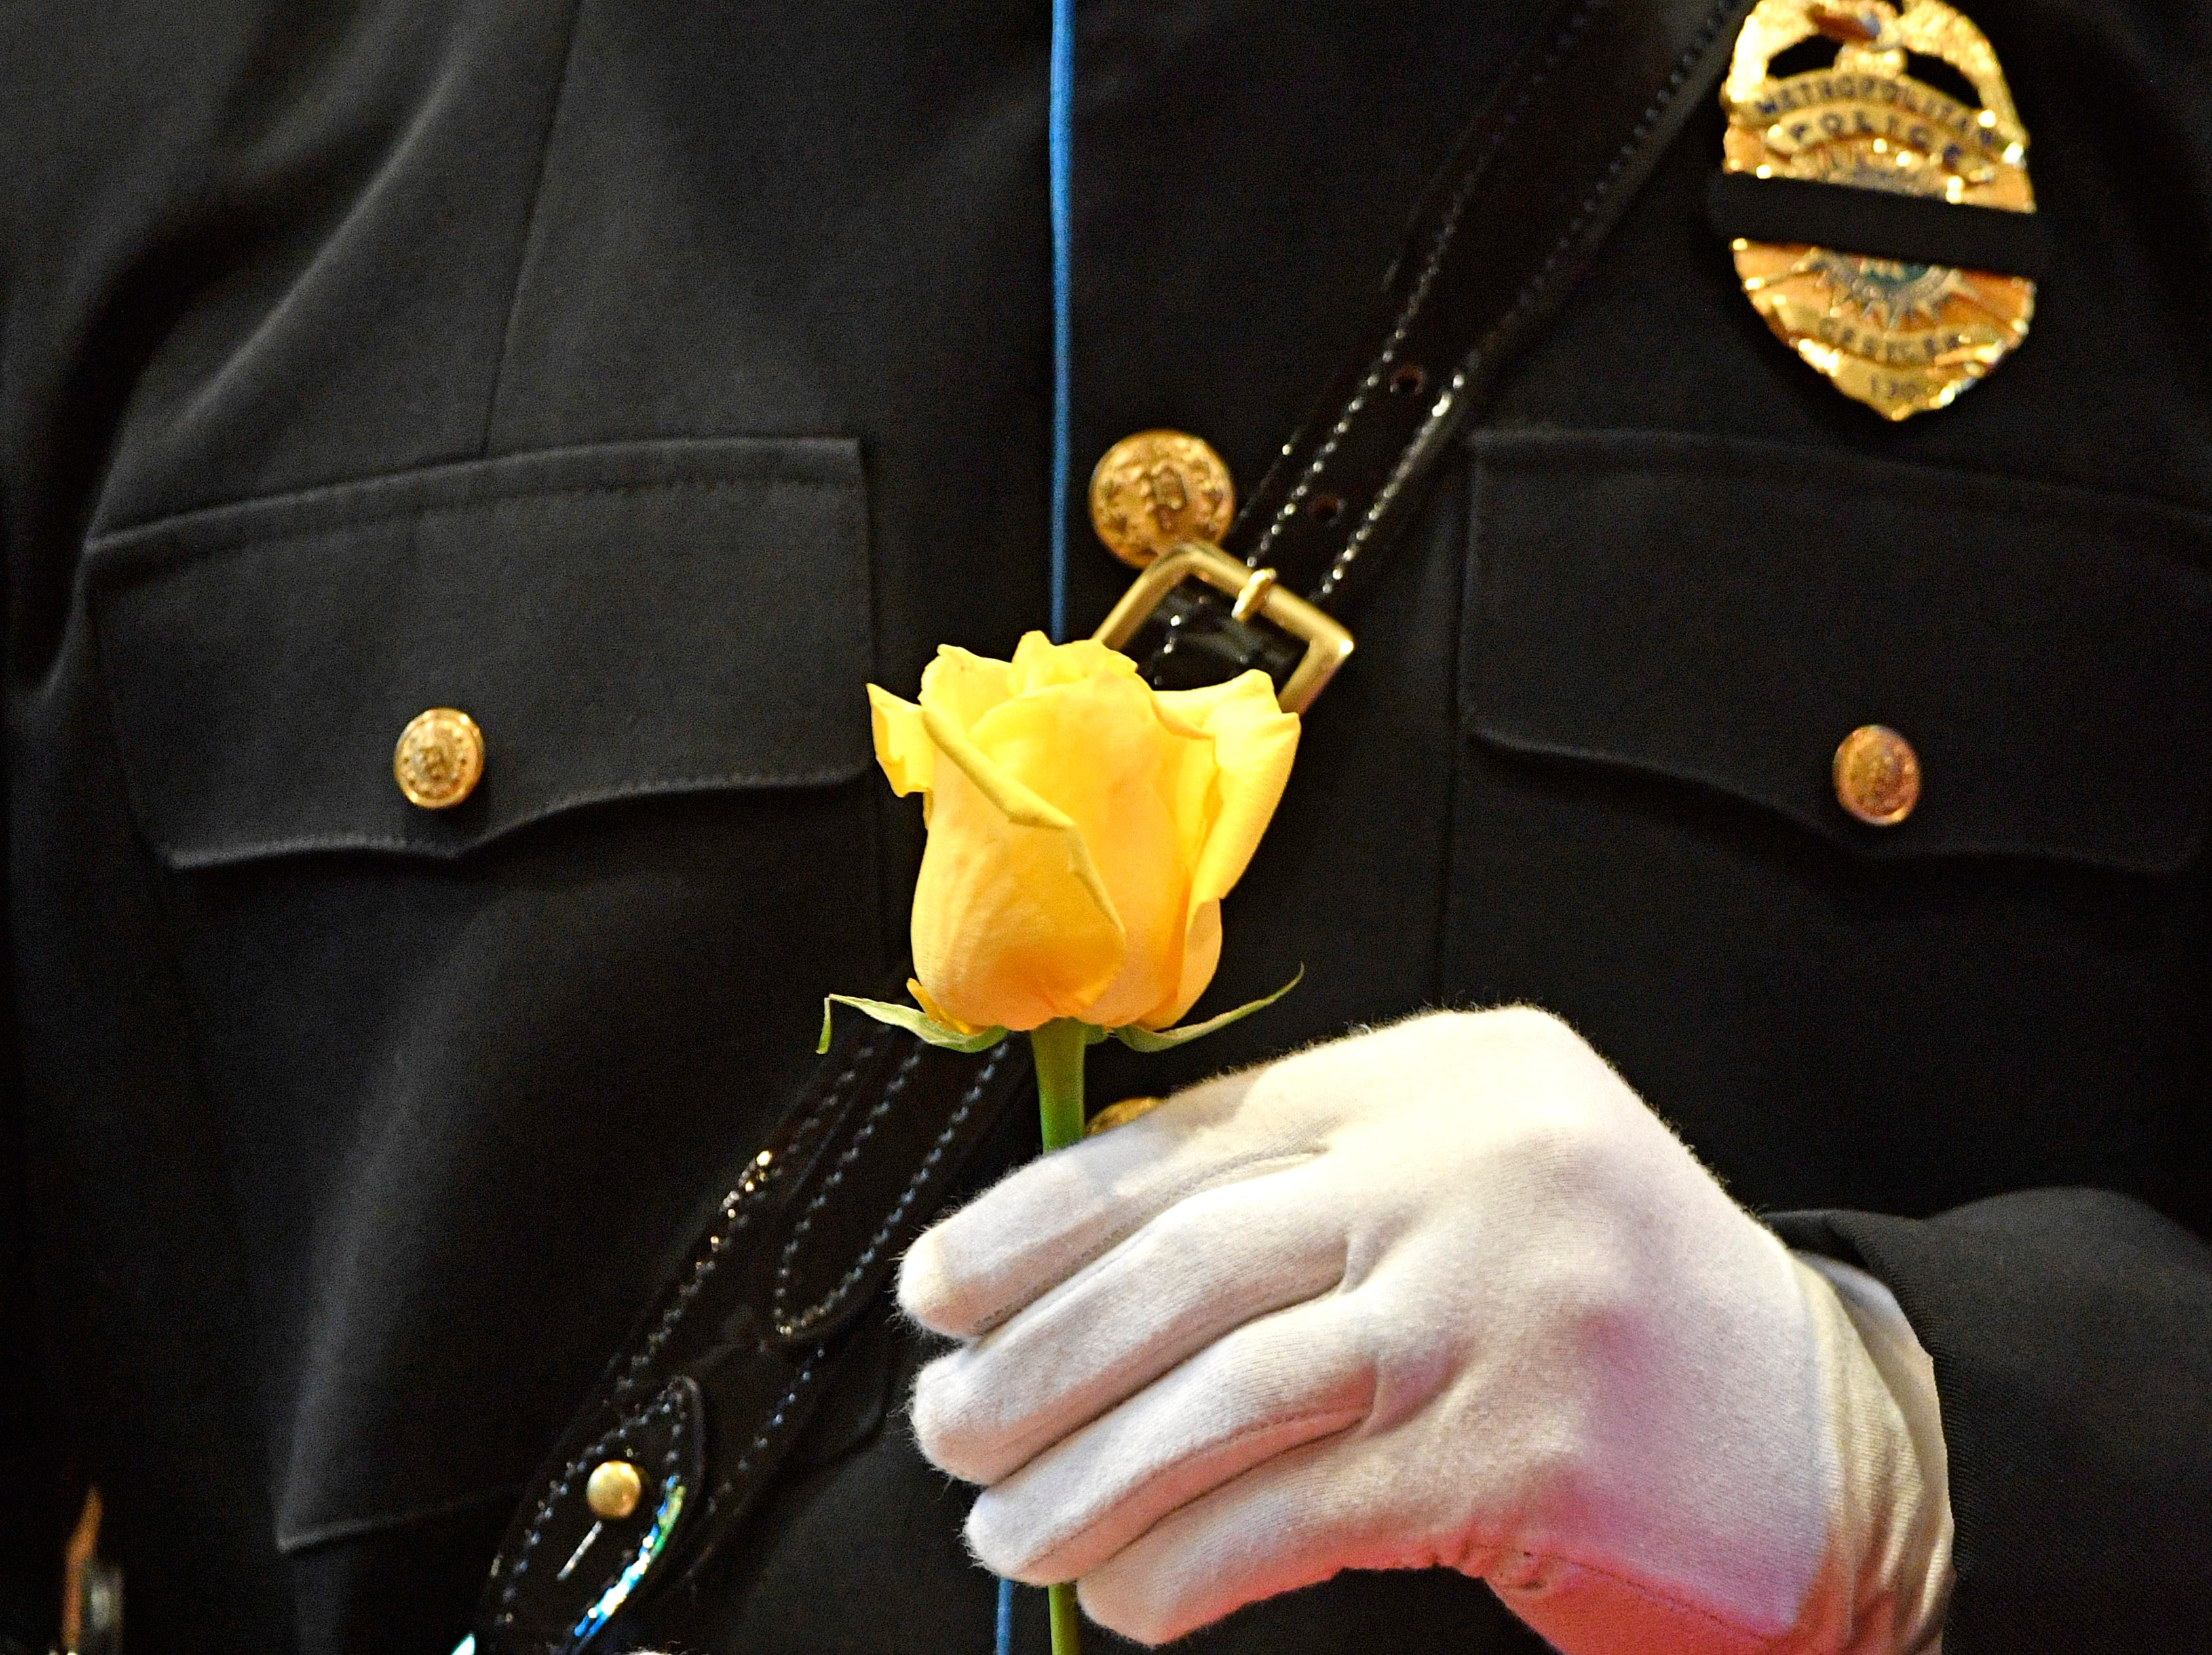 A member of the honor guard carries a yellow rose in honor of a fallen officer at the annual memorial service honoring Nashville's police officers who have died in service to the city Thursday, May 9, 2019, in Nashville, Tenn.